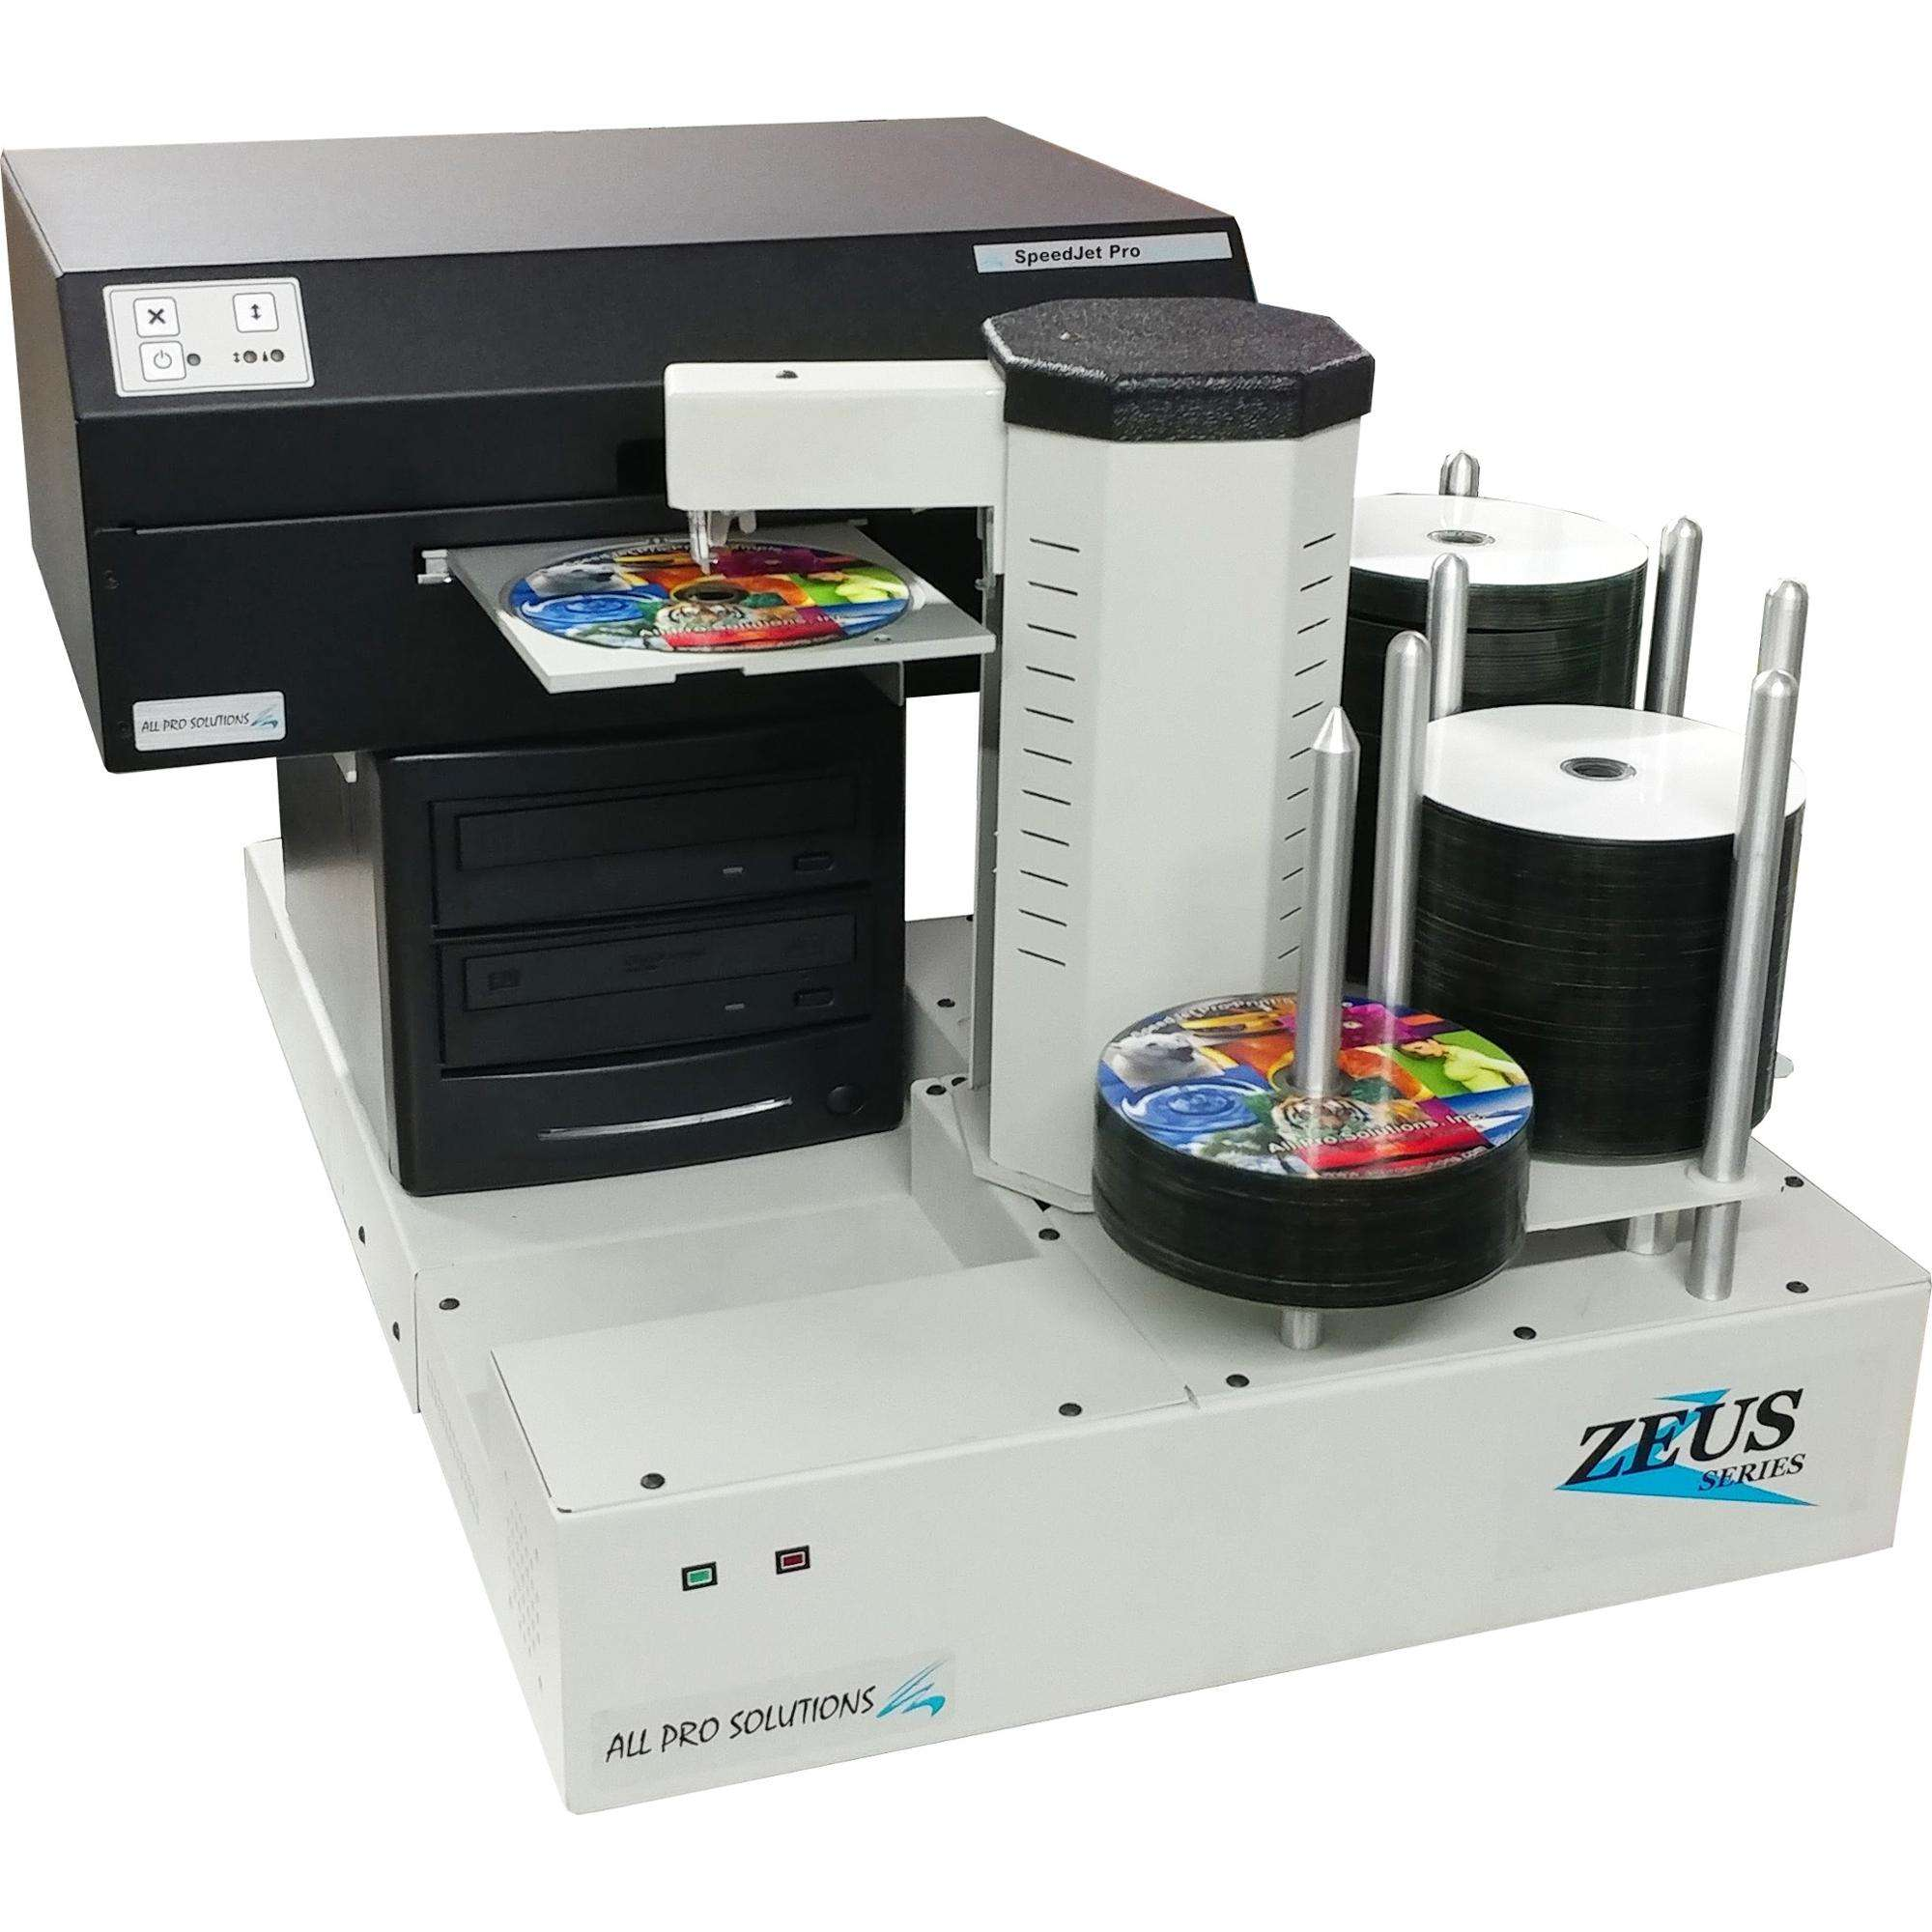 Zeus 2H Automated CD DVD Publisher 2-drive w/ Internal Computer, SpeedJet Inkjet Printer & 220 Disc Capacity